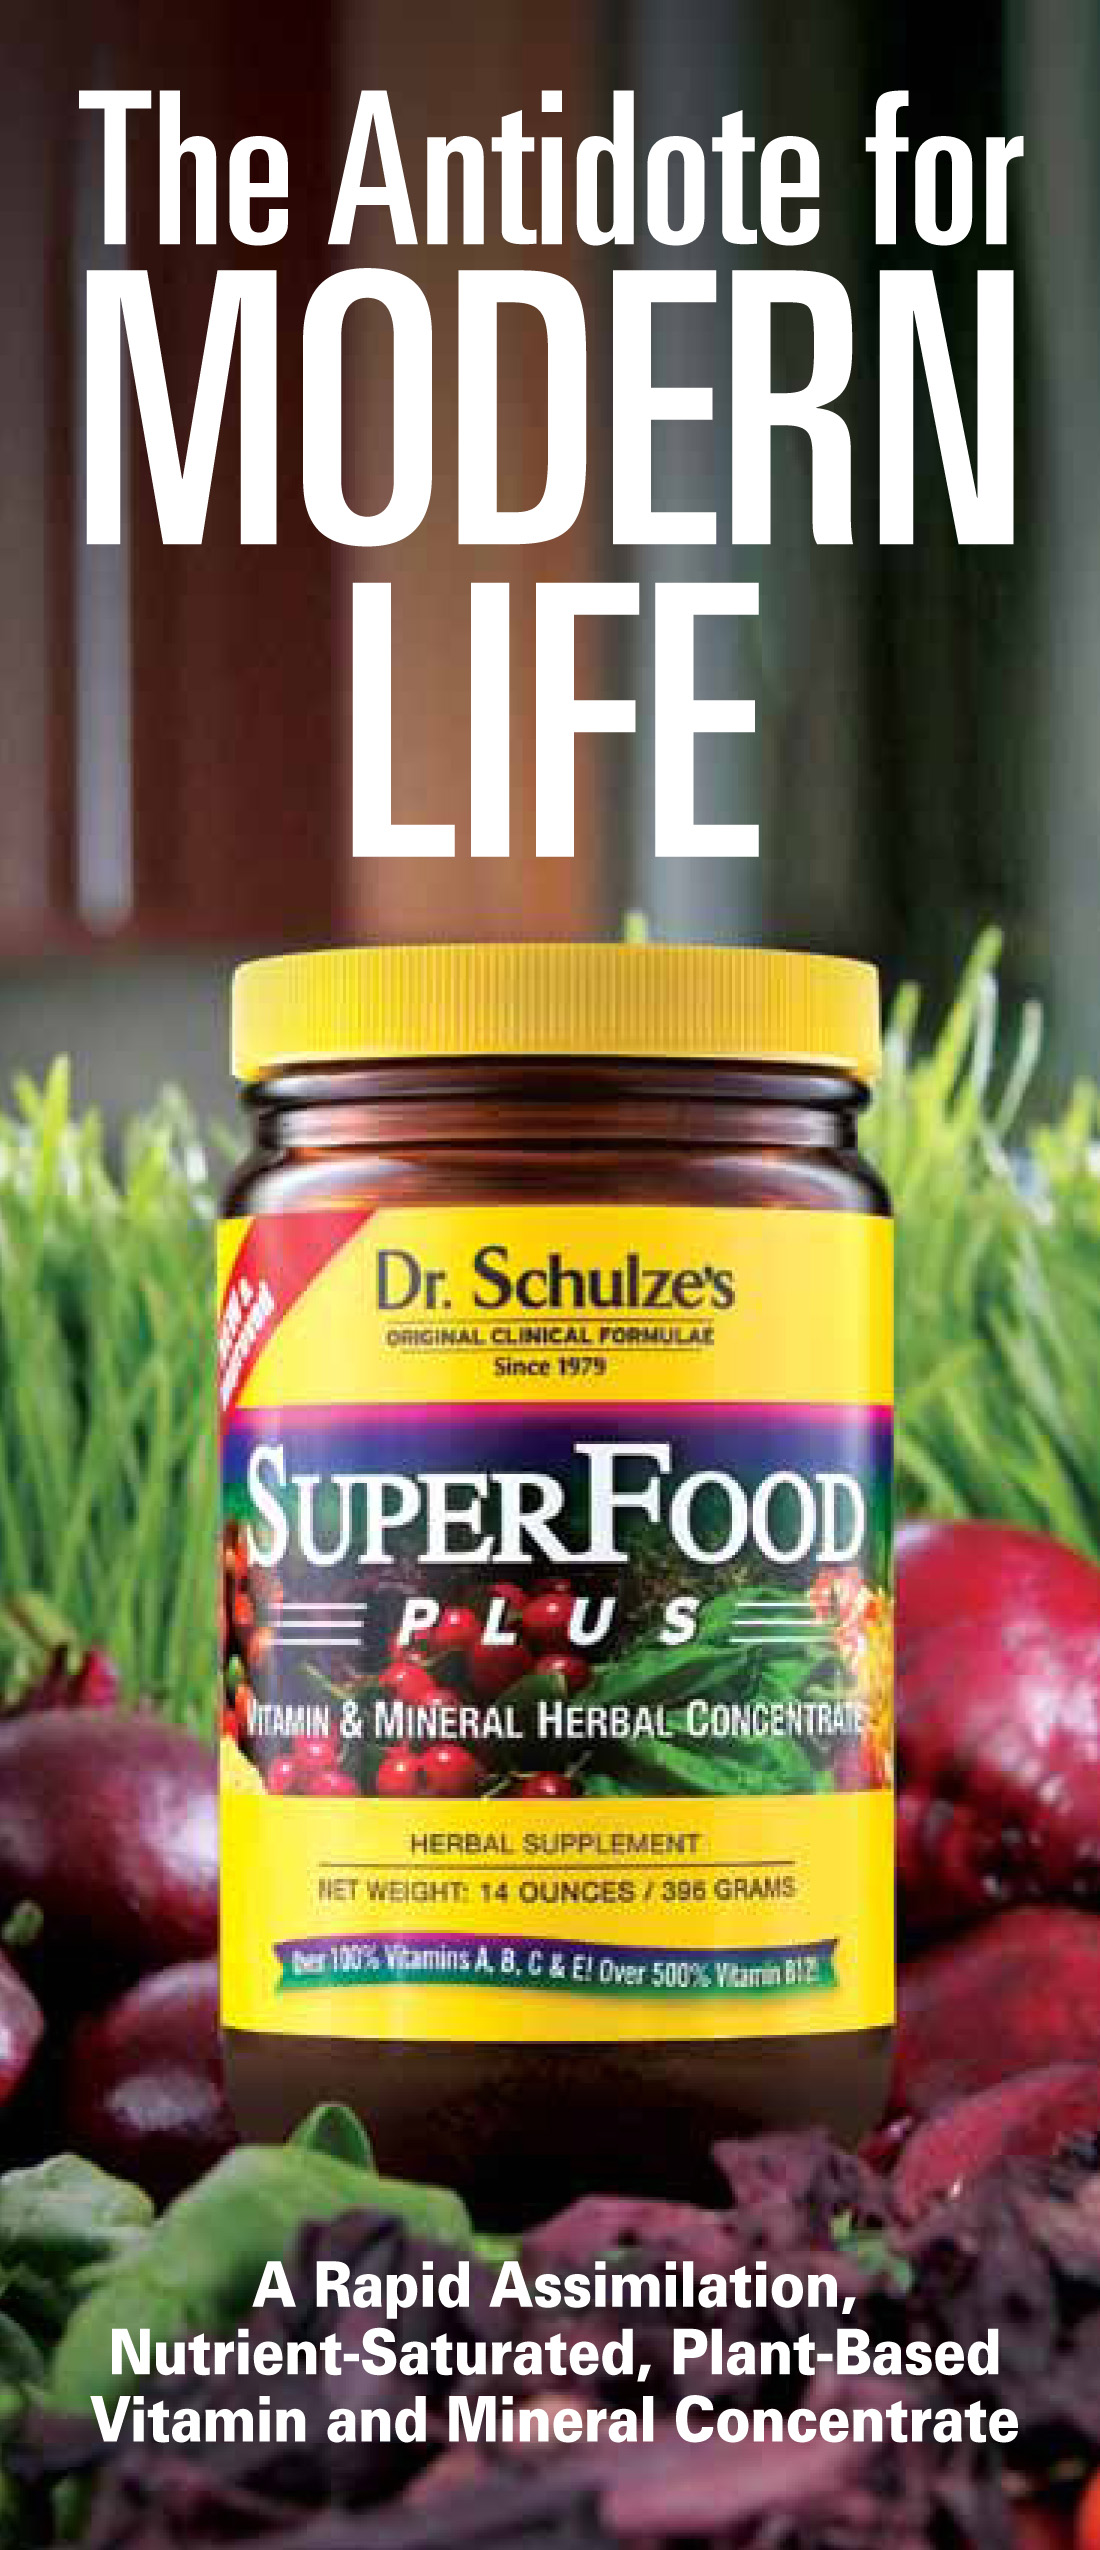 Super Food Plus Print